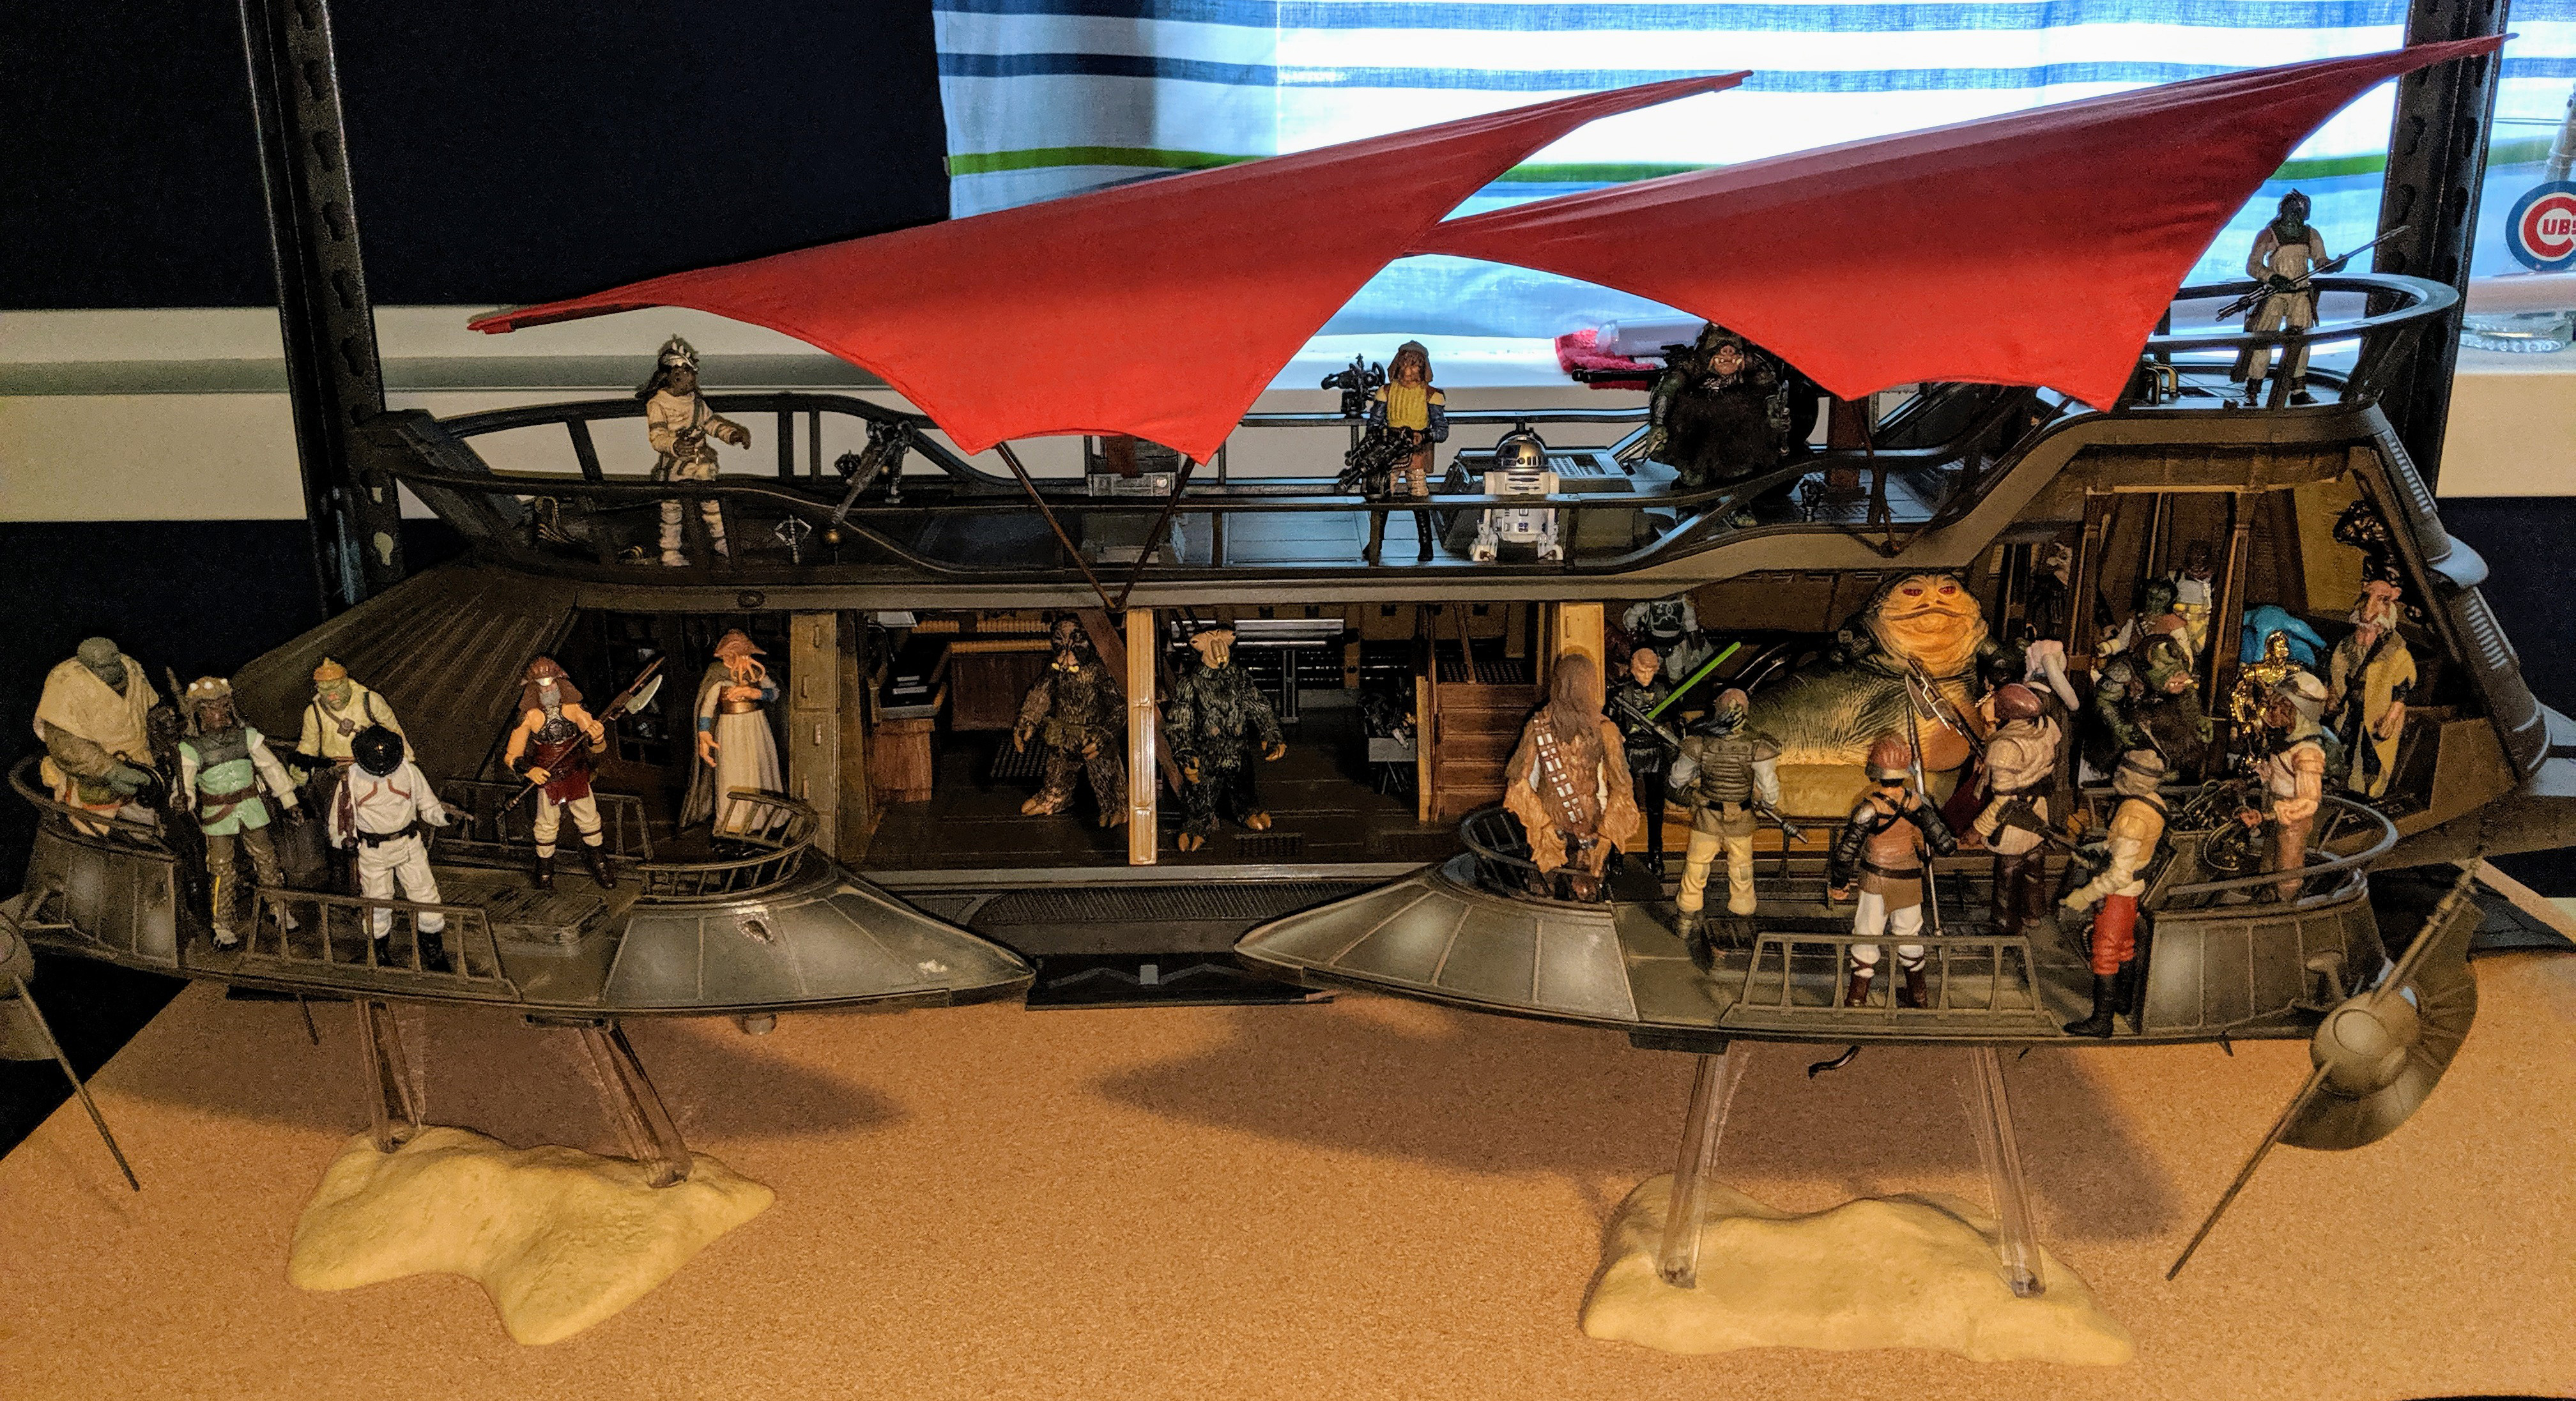 The Battle of the Great Pit of Carkoon - I\'ve waited many years to be able to put this display together!